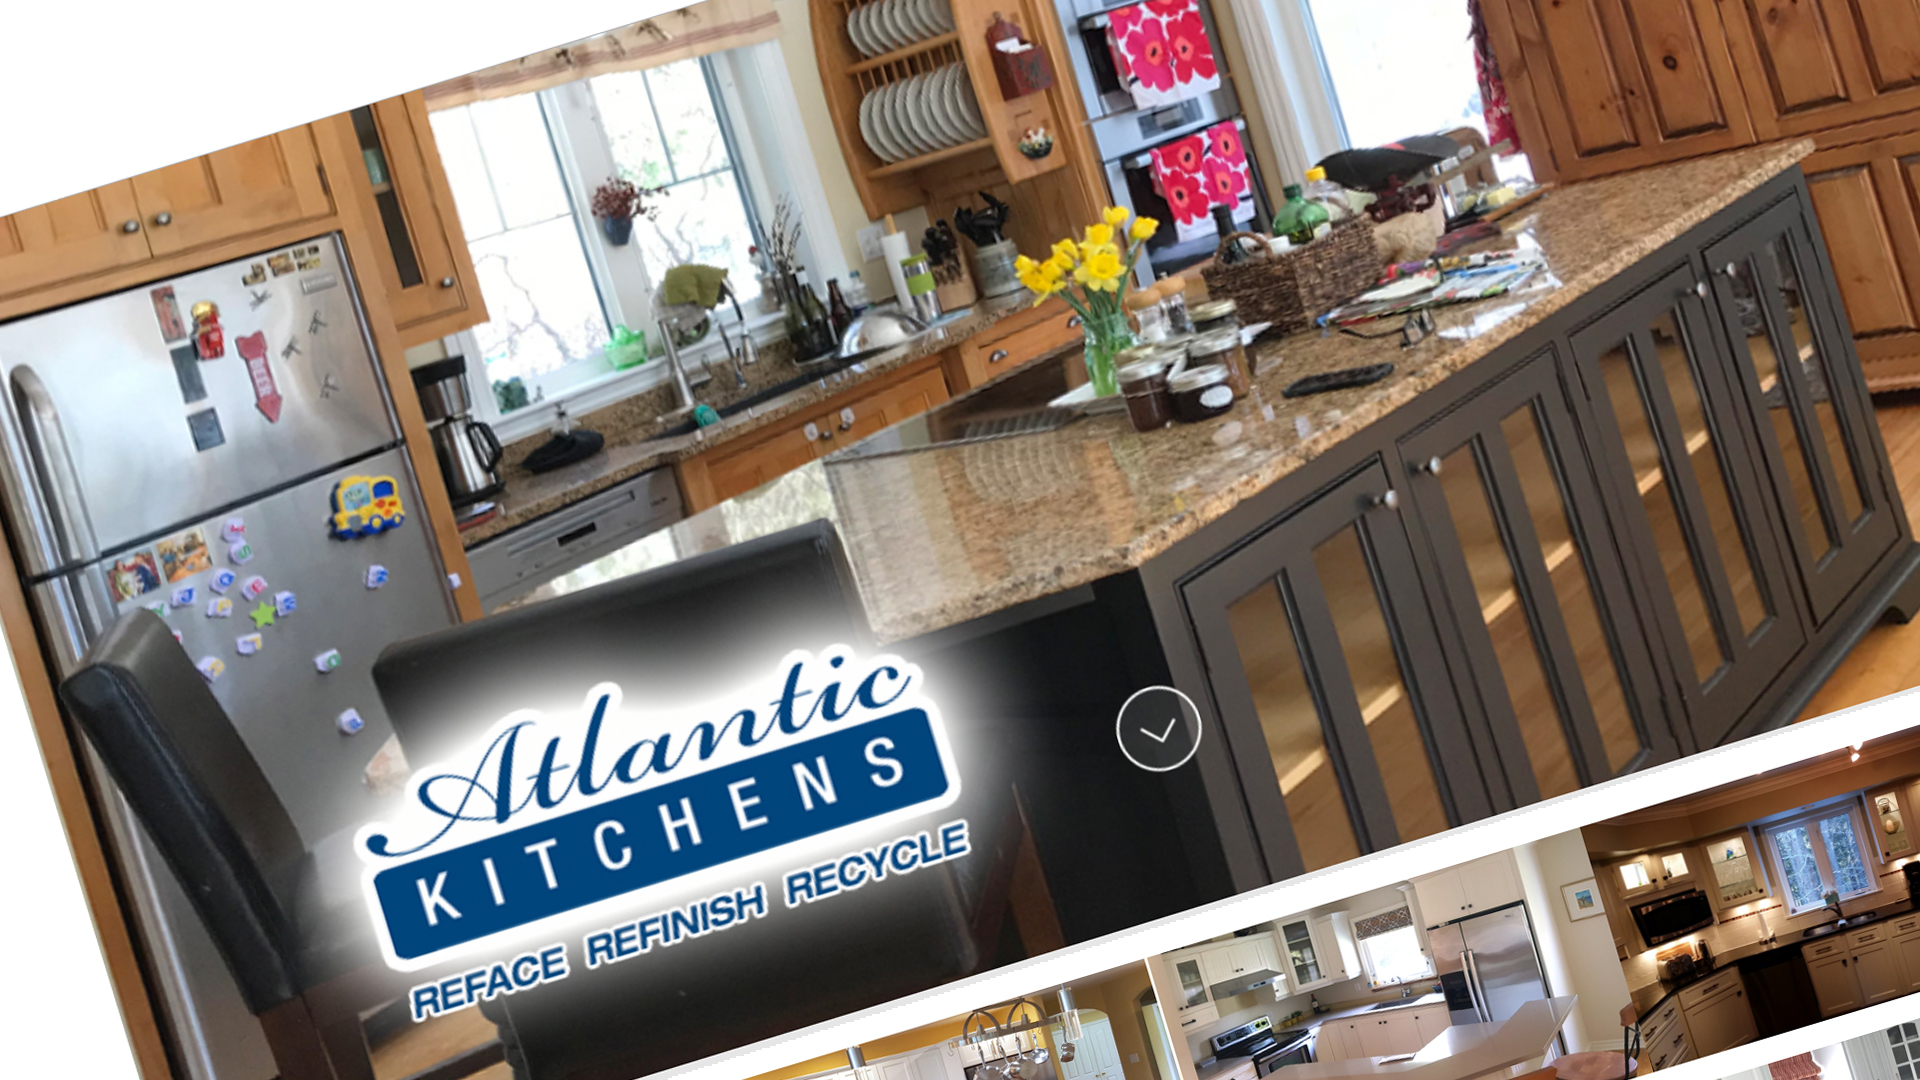 Atlantic Kitchens